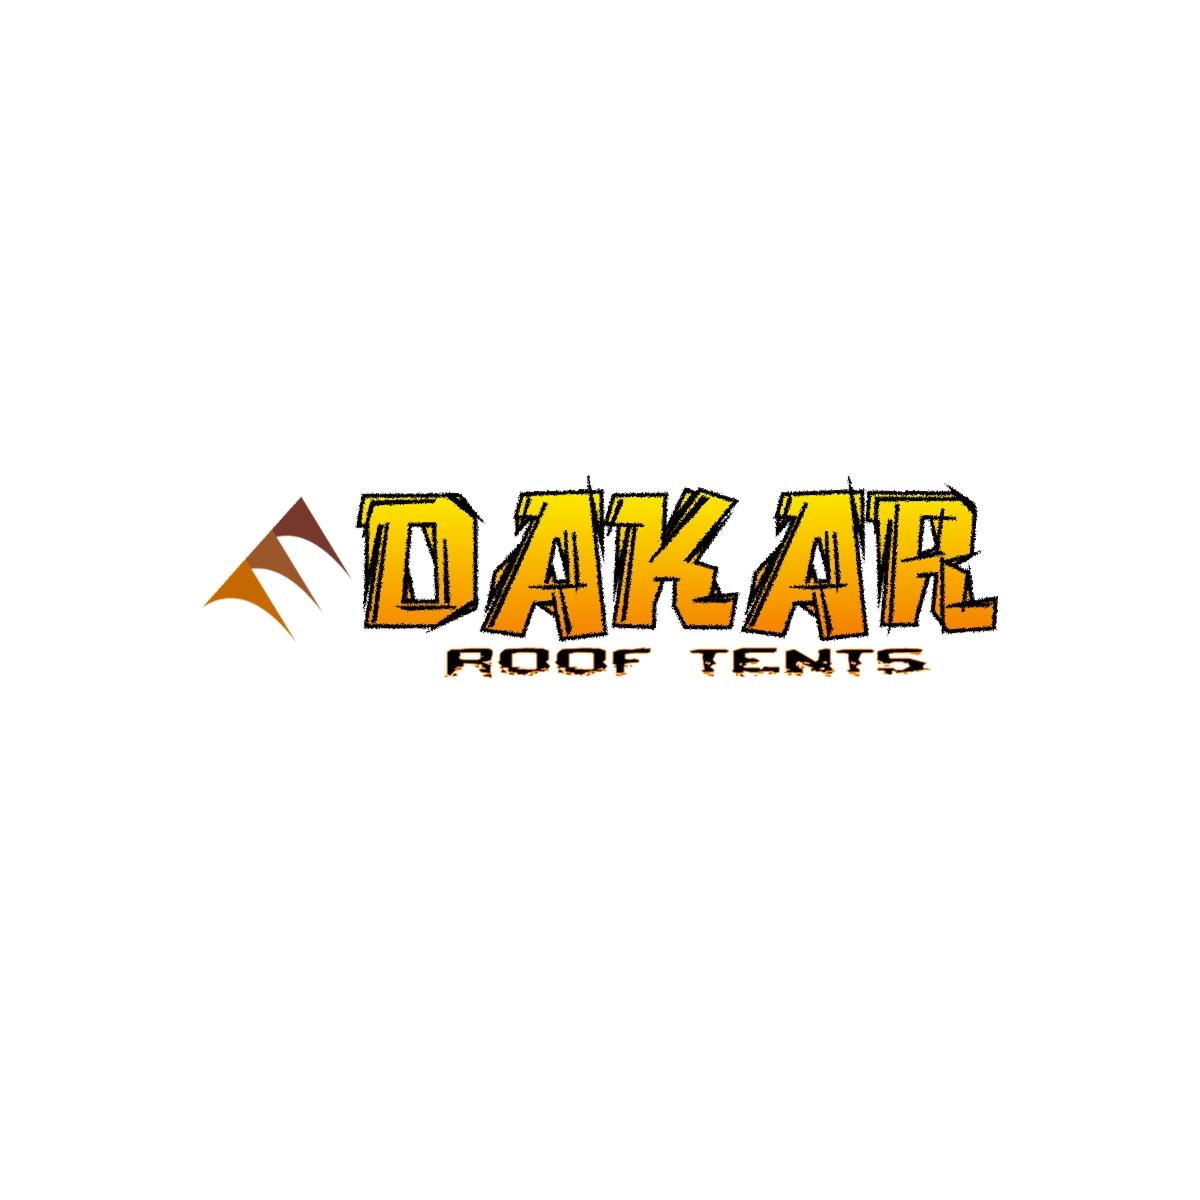 Logo Design by Joseph calunsag Cagaanan - Entry No. 49 in the Logo Design Contest Dakar Roof Tents.